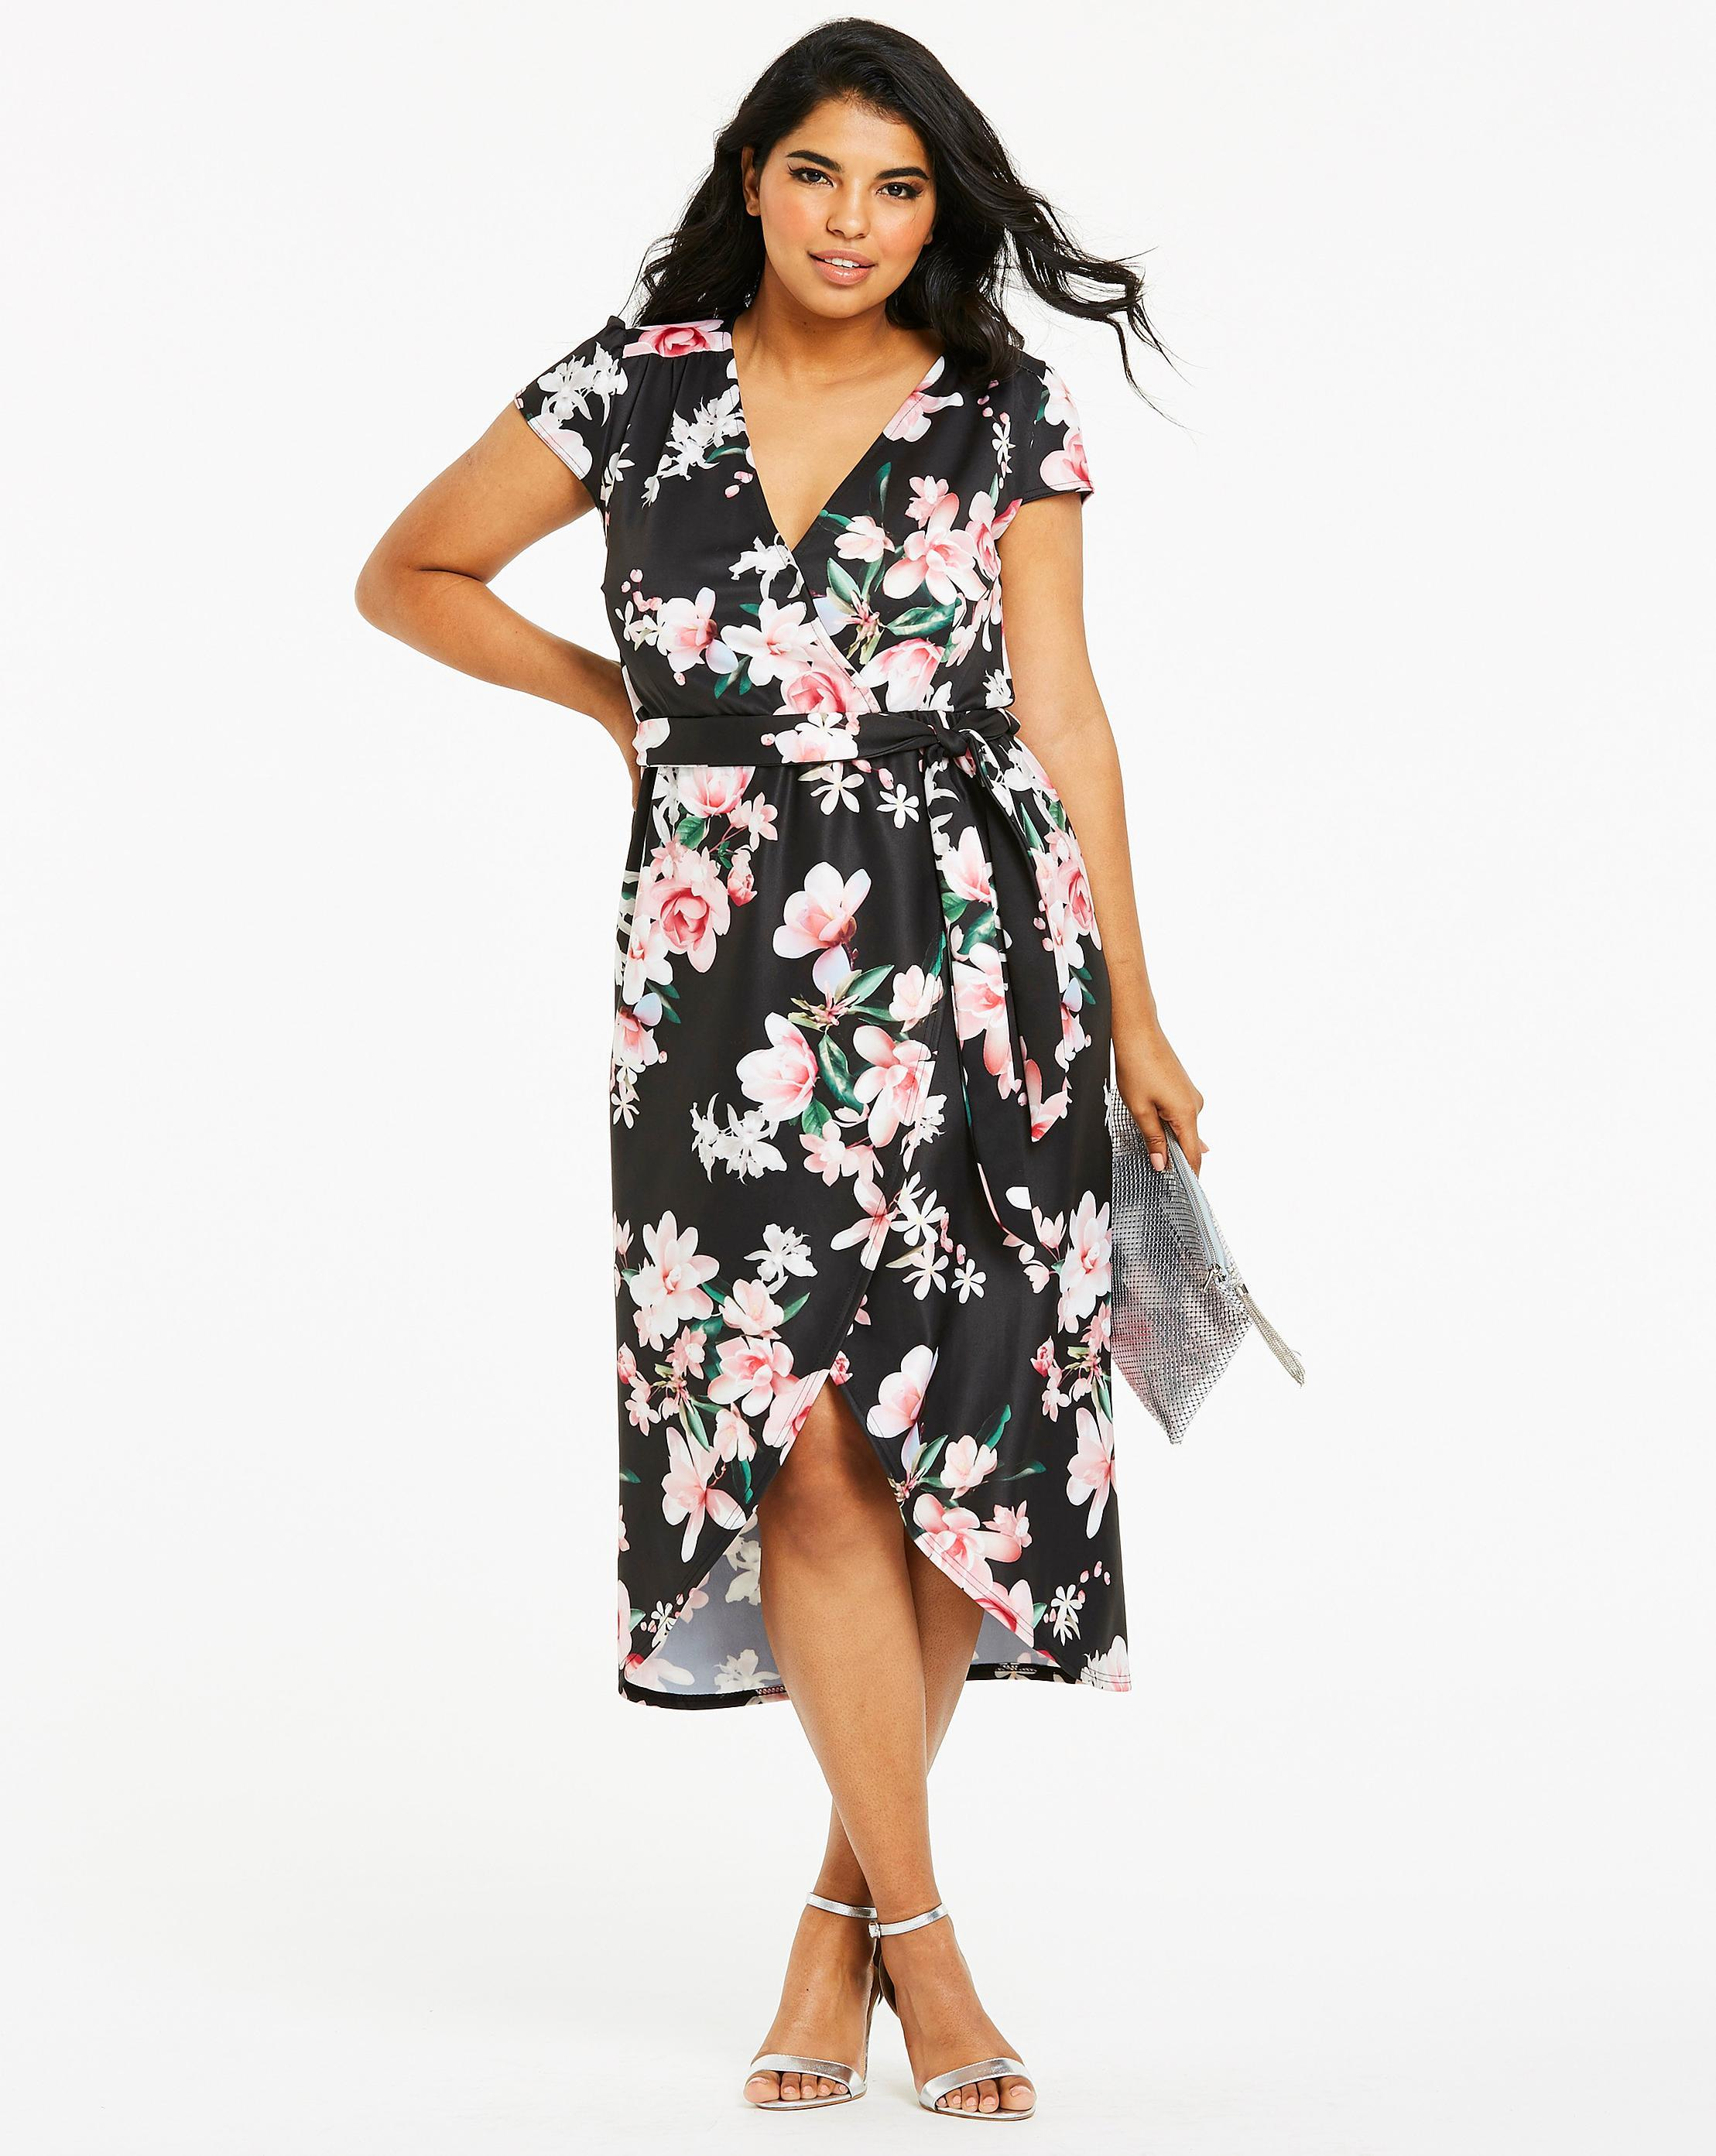 439f1a024ec Lyst - Simply Be Quiz Curve Floral Wrap Dress in Black